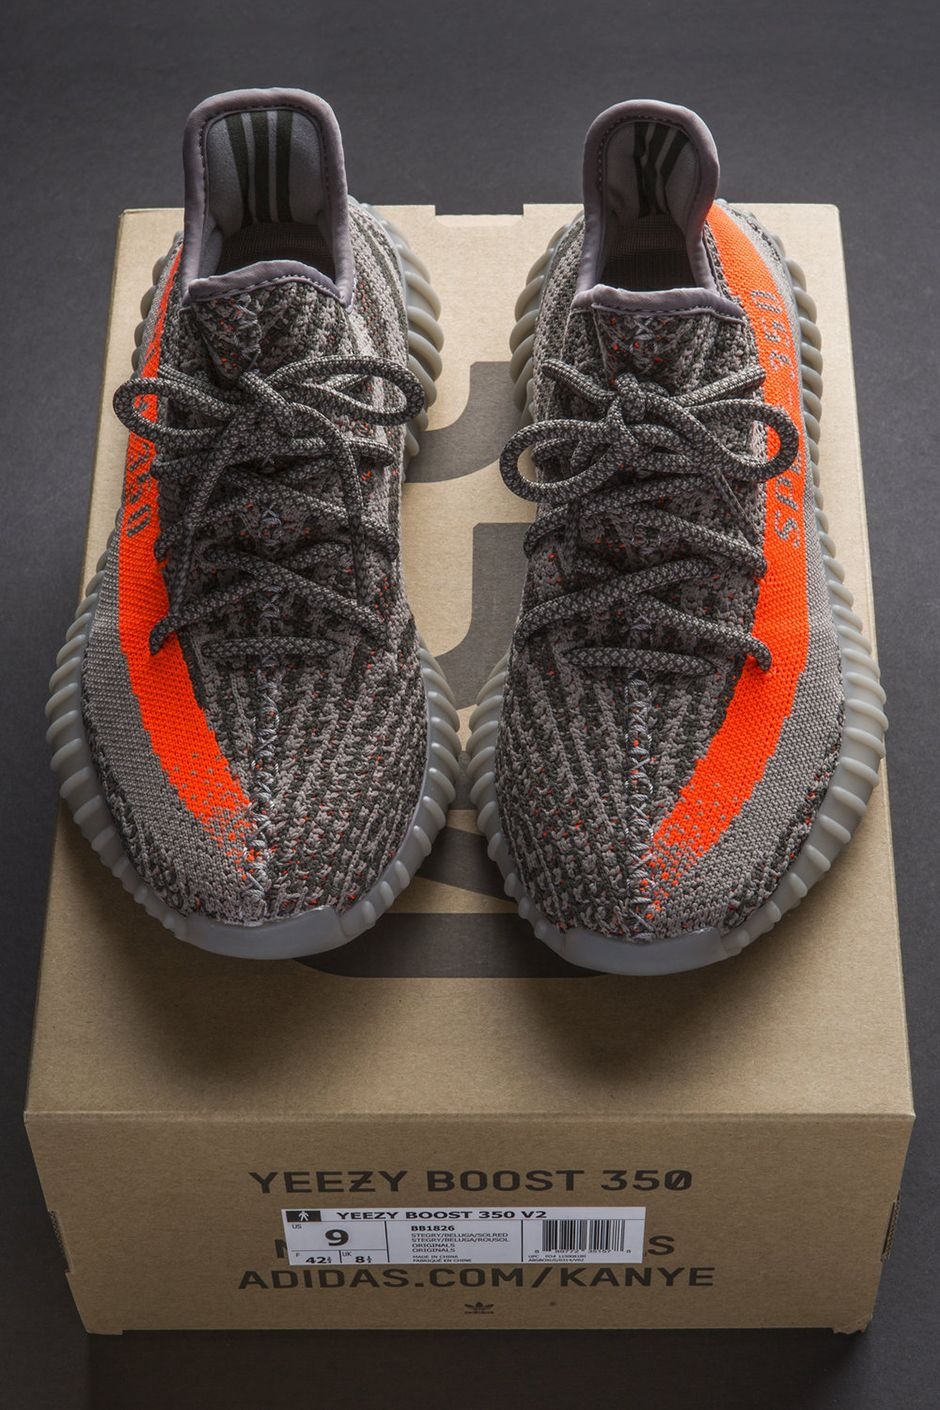 cc2d14e20 The countdown to the next chapter of Yeezy madness has officially  commenced…